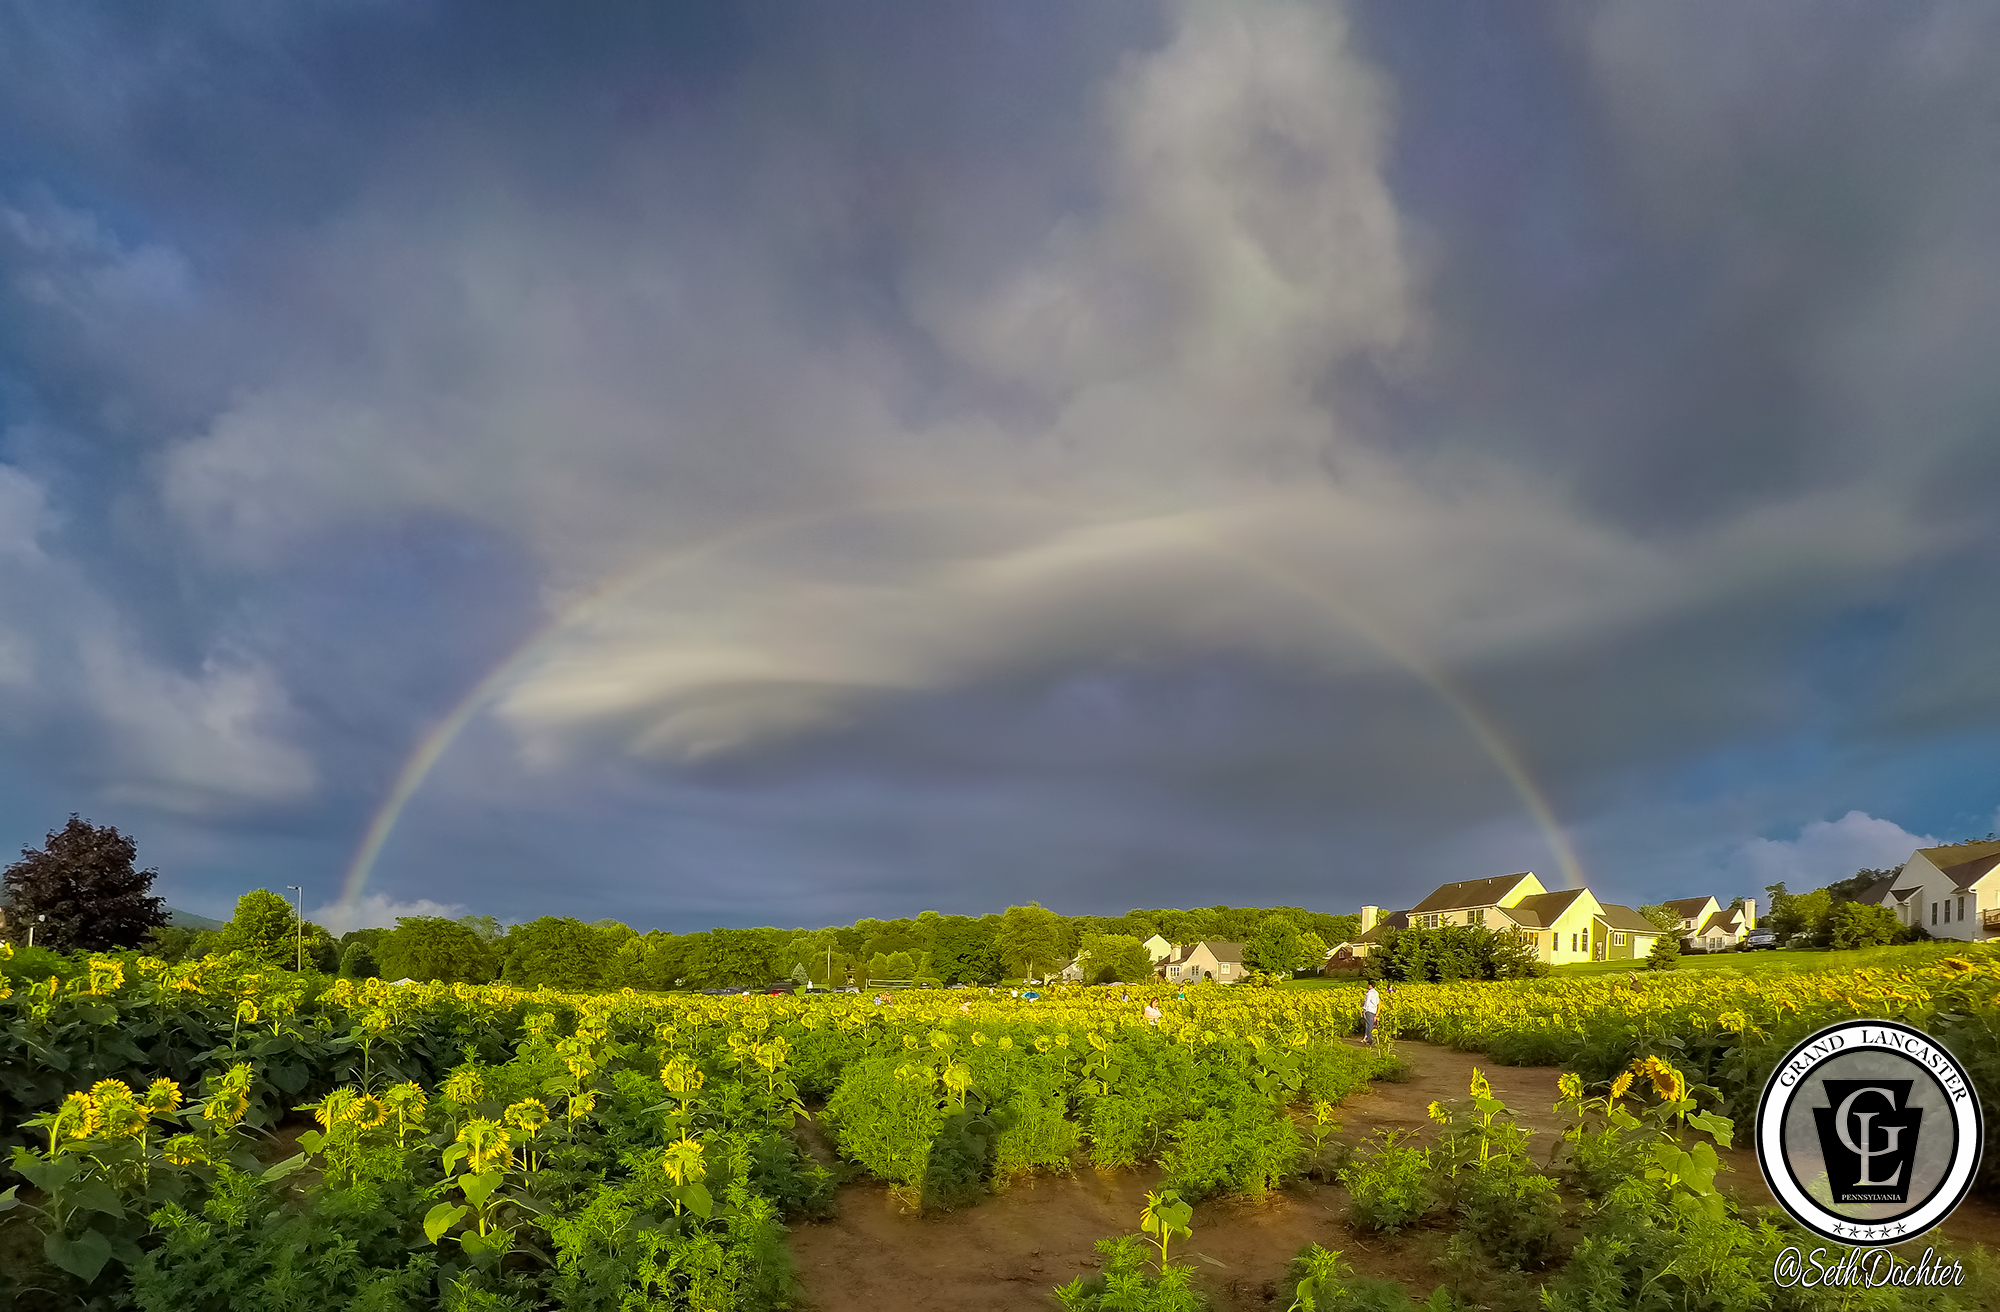 1503 - sunflowers 2018 - full rainbow (p,b).jpg